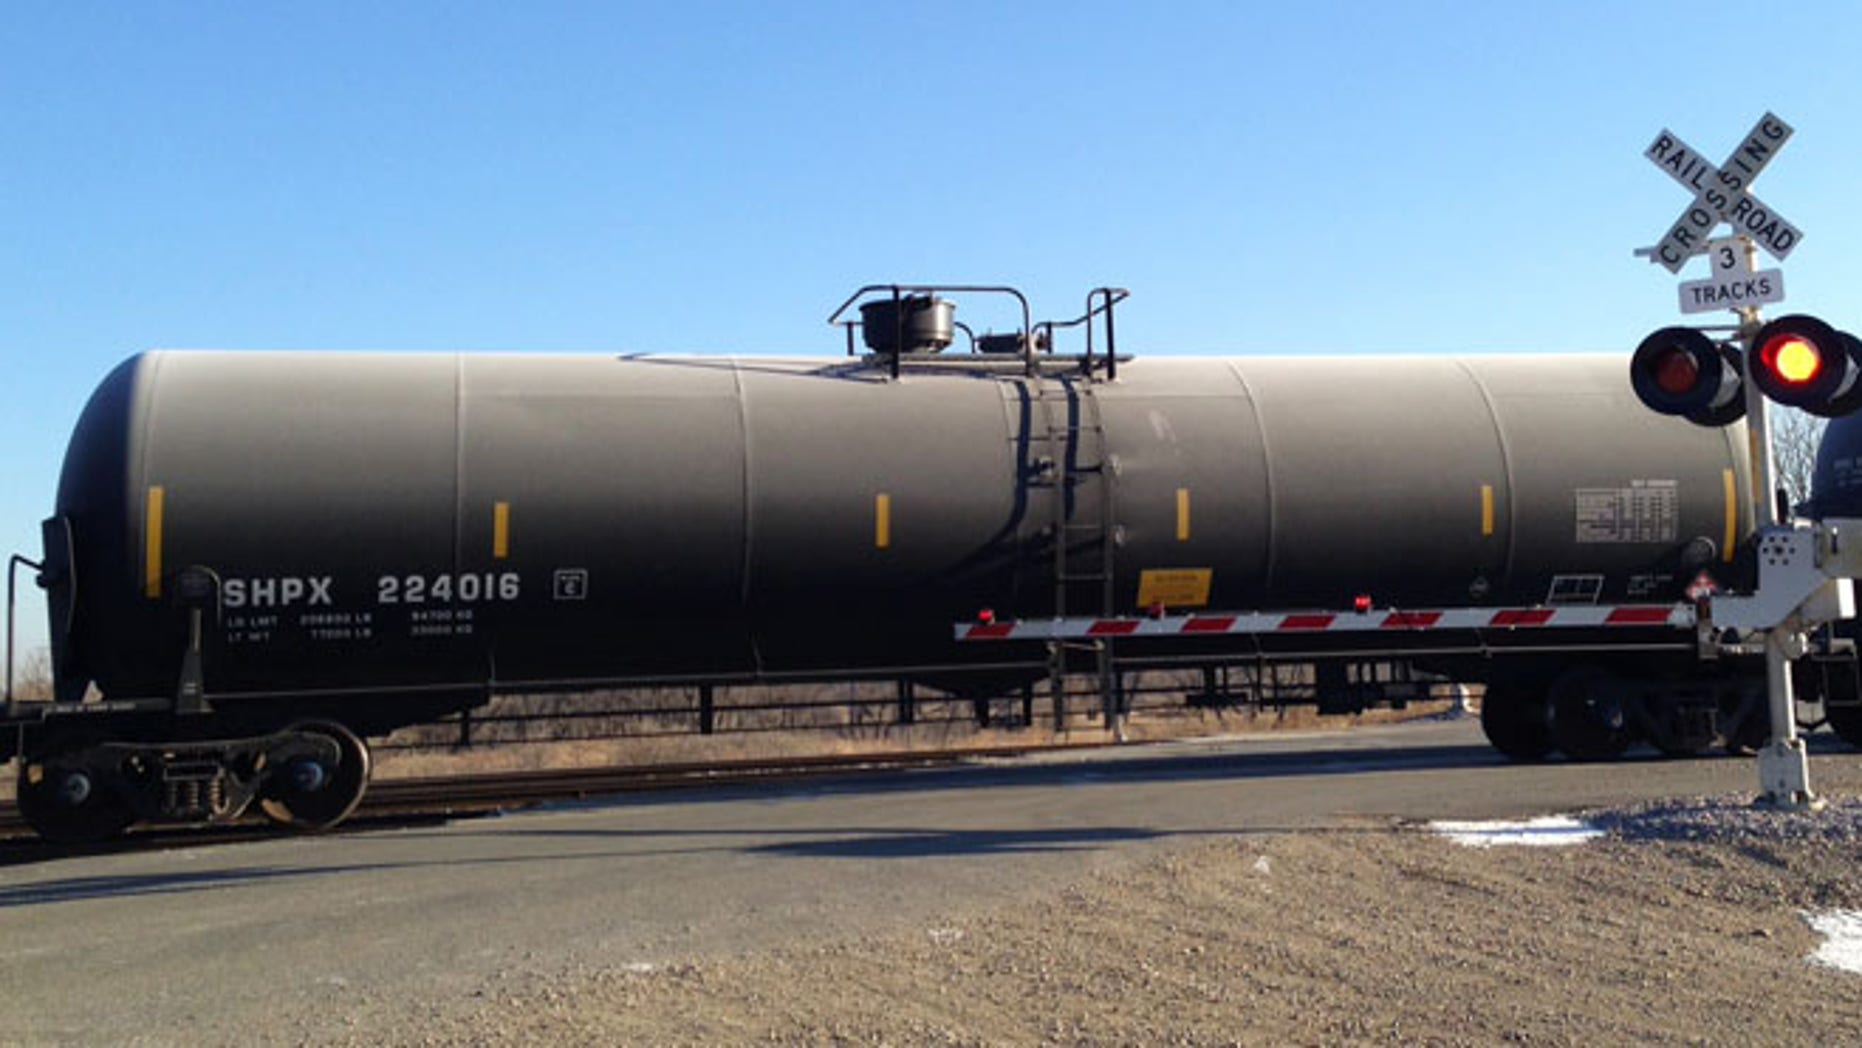 Nov. 14, 2014: A train loaded with oil tank cars idles on a track in North Dakota.